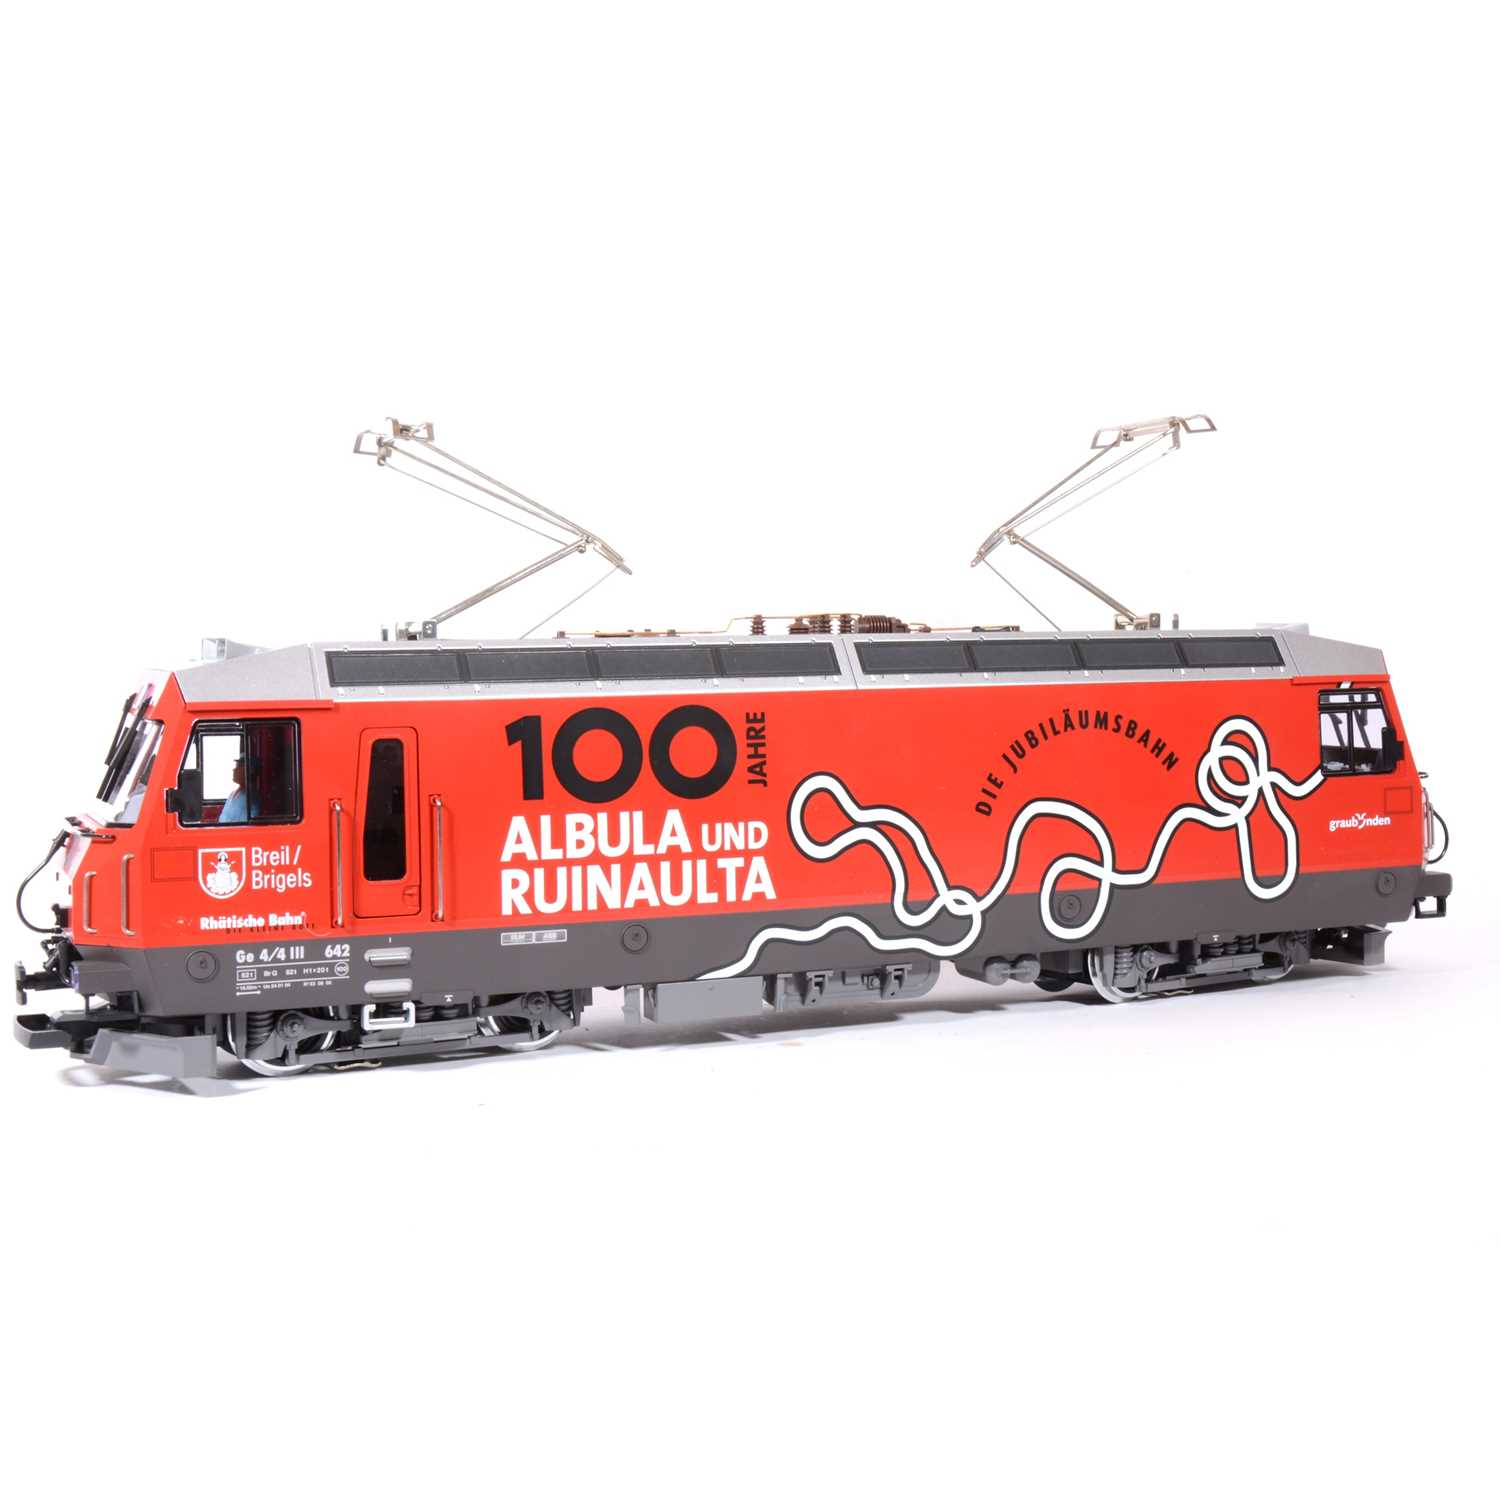 Lot 85-LGB electric, G scale, 100 Jahre Albula und Ruinault locomotive, no.27422, boxed.